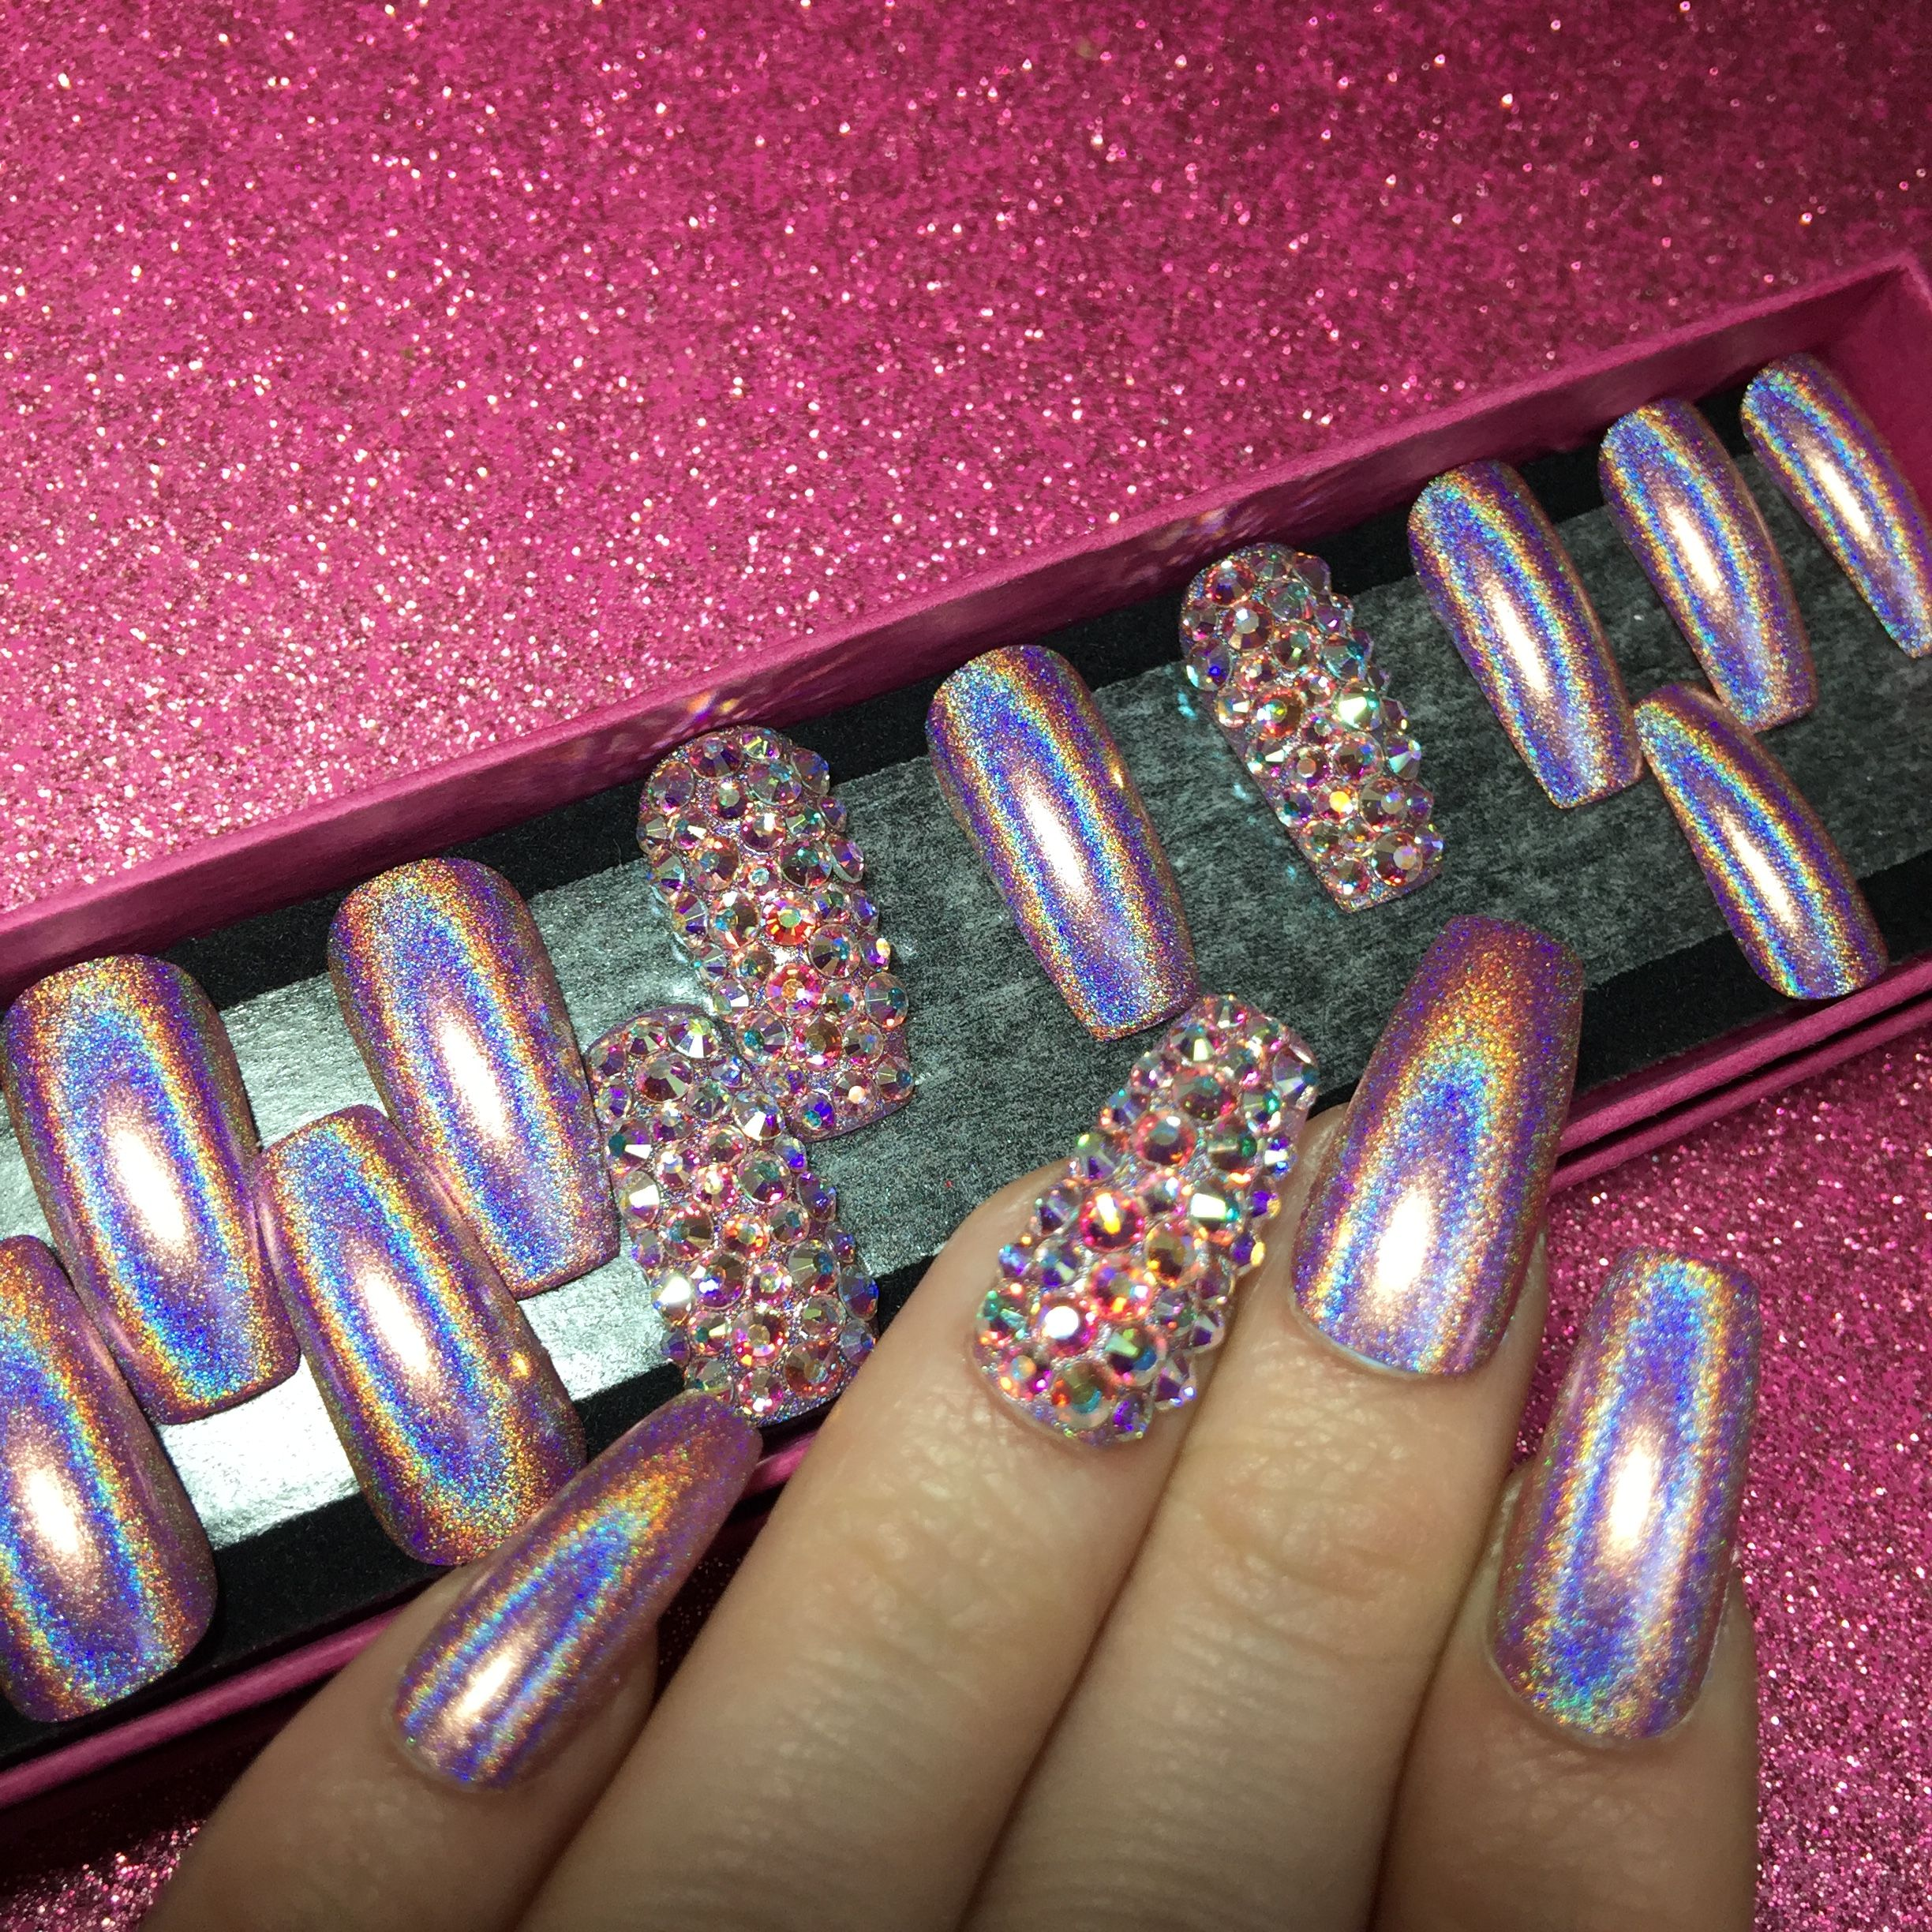 Pink Holographic Long Coffin Press On Nails For Sale Www Nailituk Co Uk Holographic Nails Coffin Nails Long Pink Holographic Nails